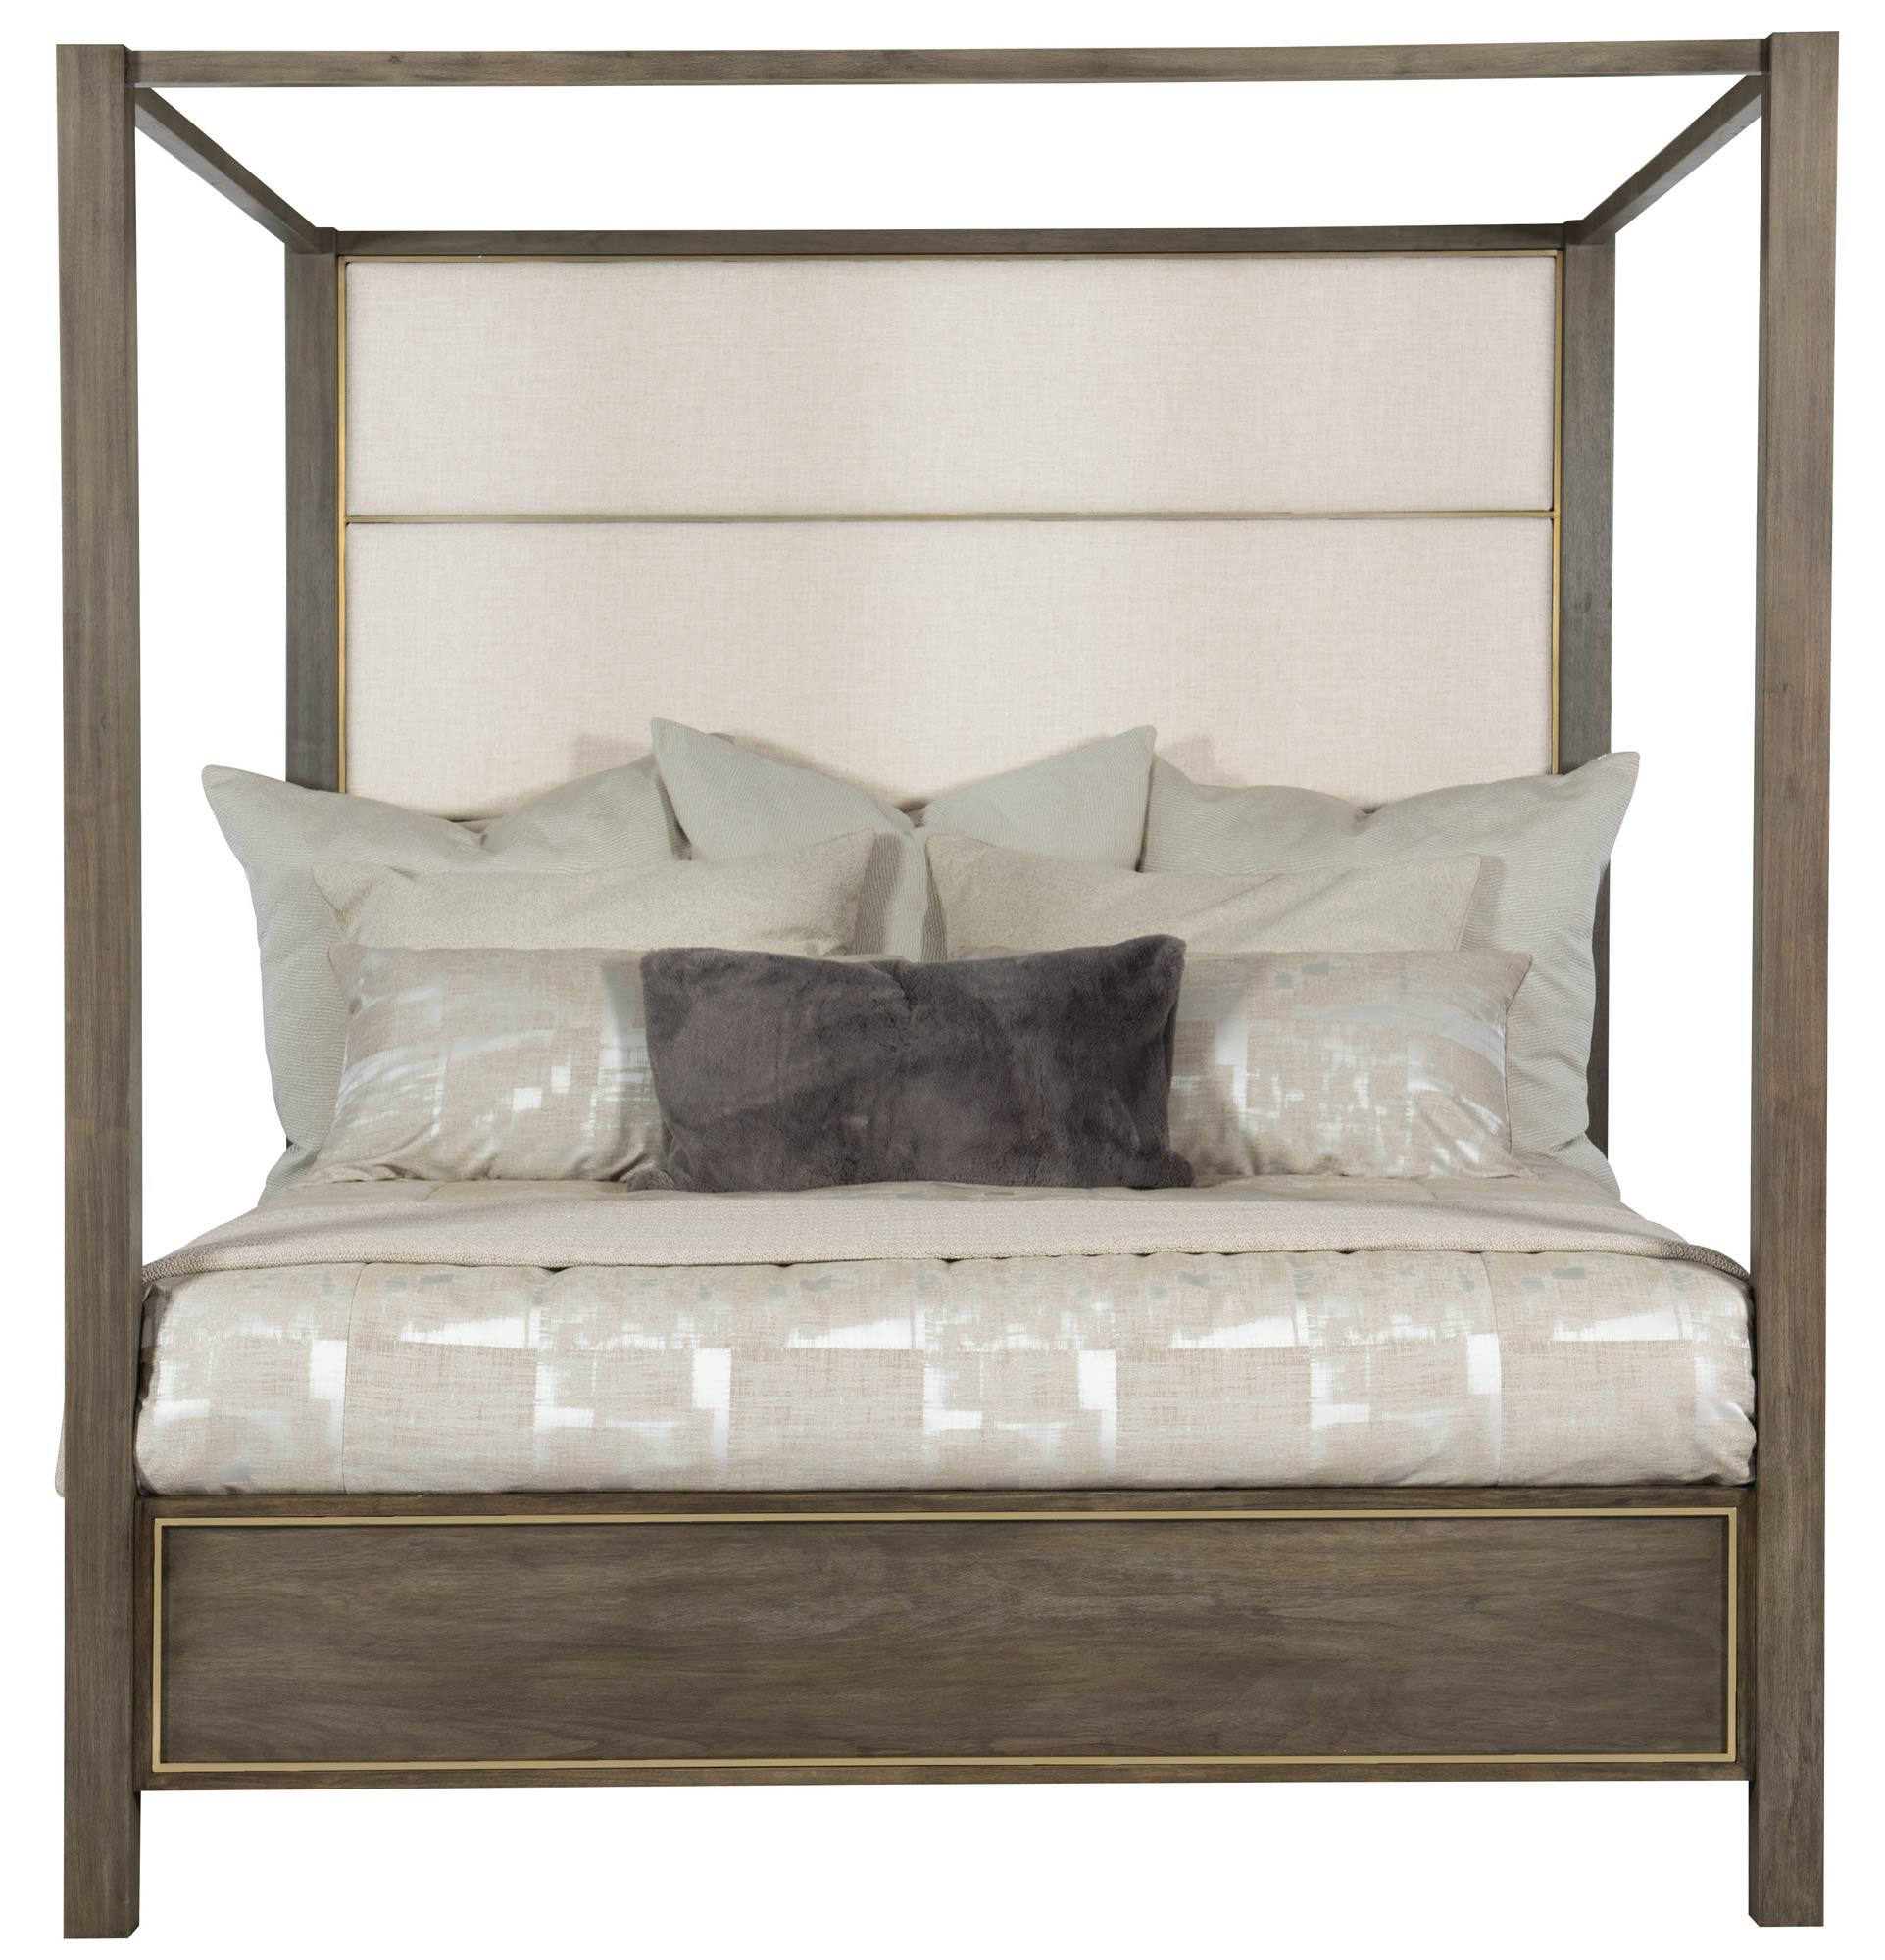 Stunning bernhardt bedroom furniture photos home design for Bernhardt furniture